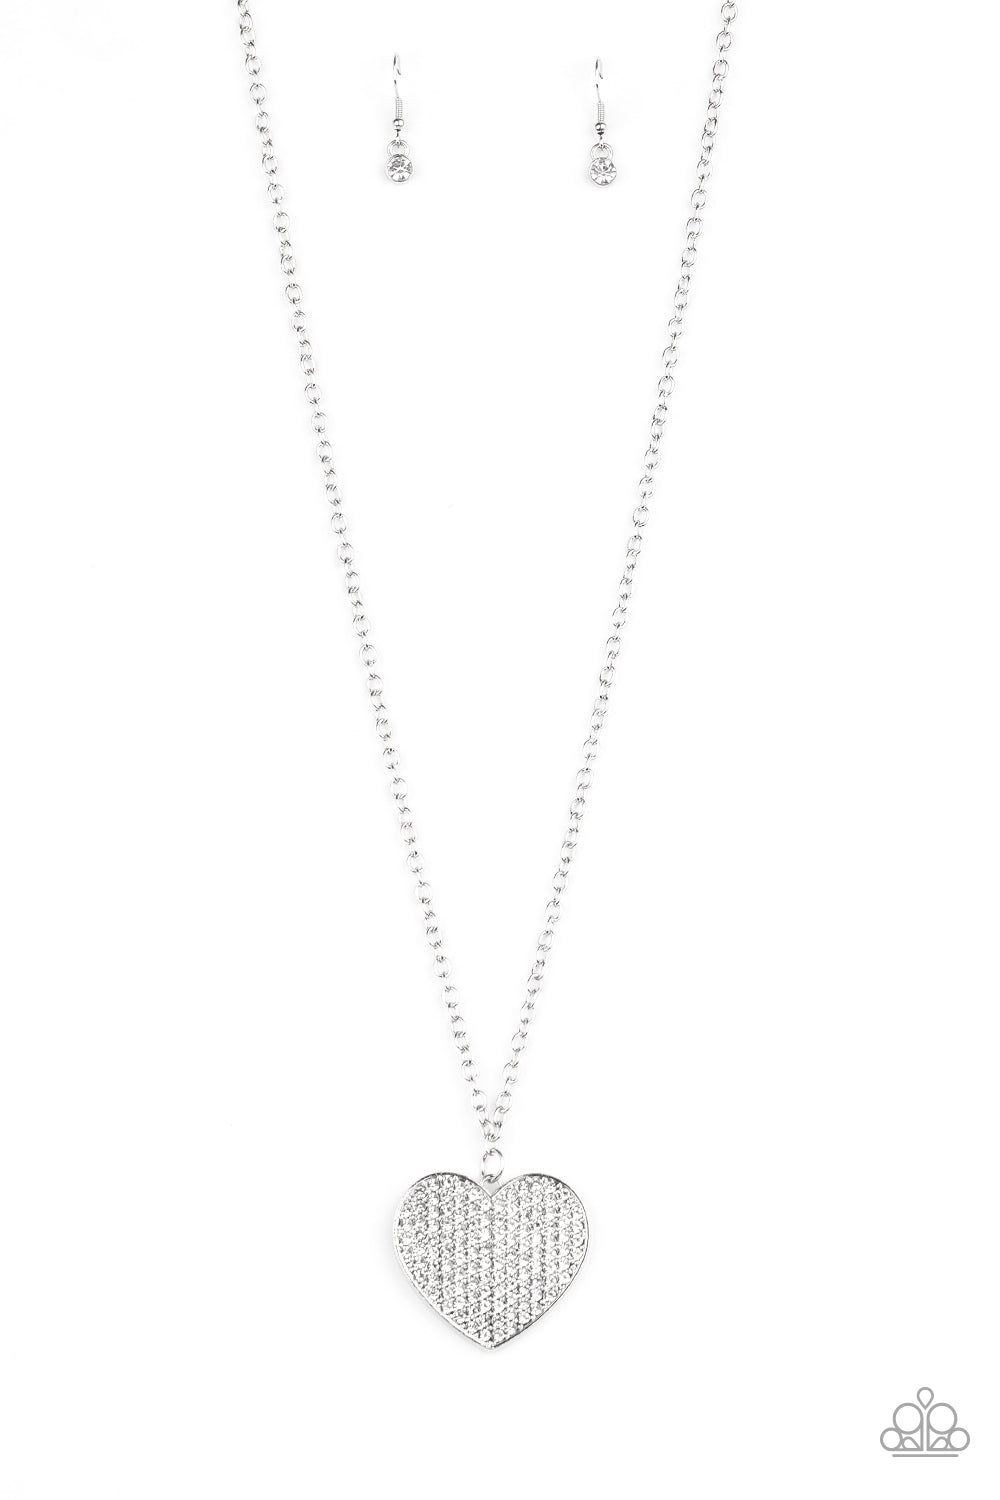 Have To Learn The Heart Way White Necklace